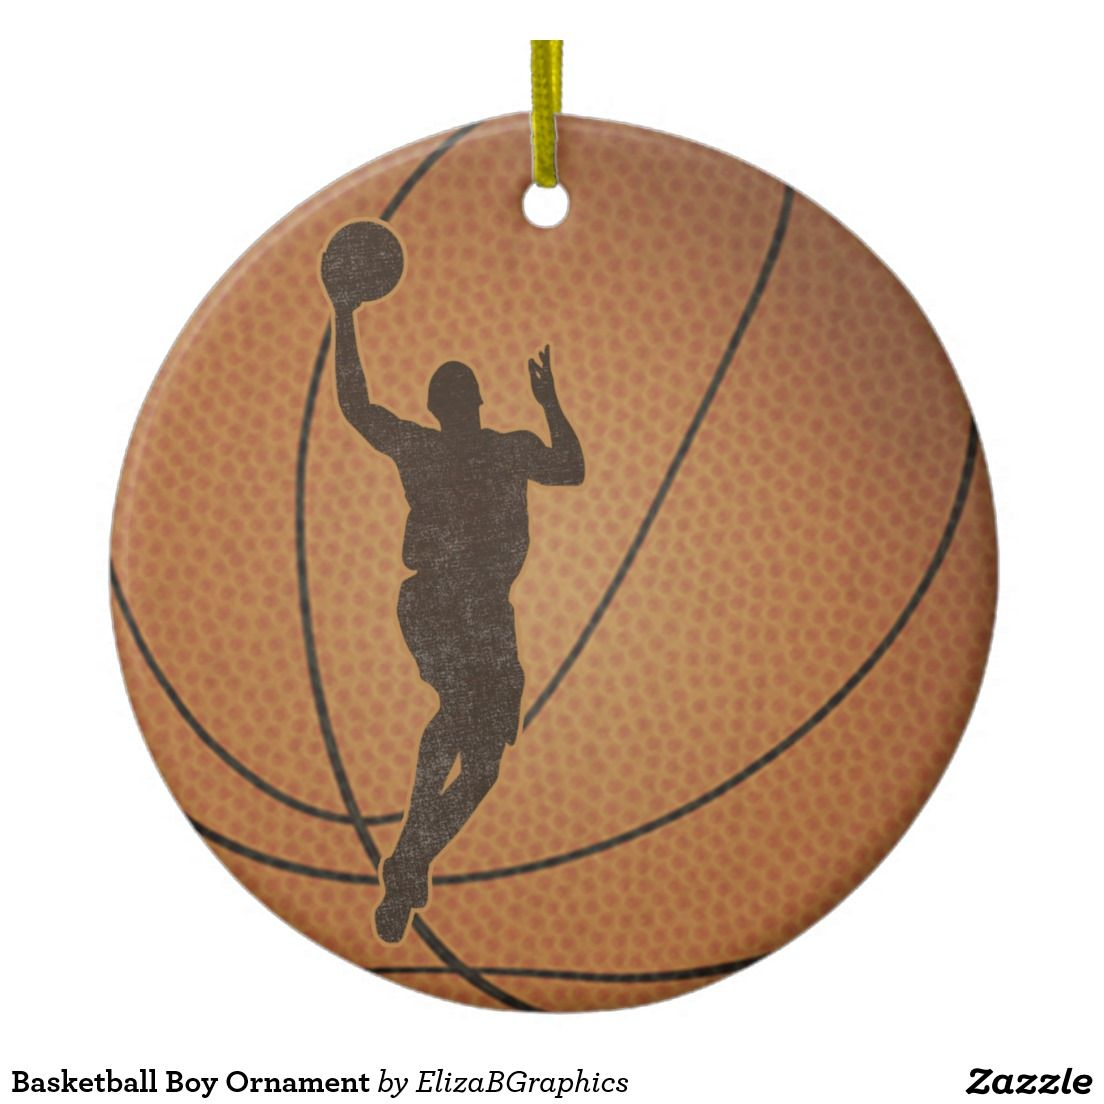 #basketball #boy #ornament #Christmas